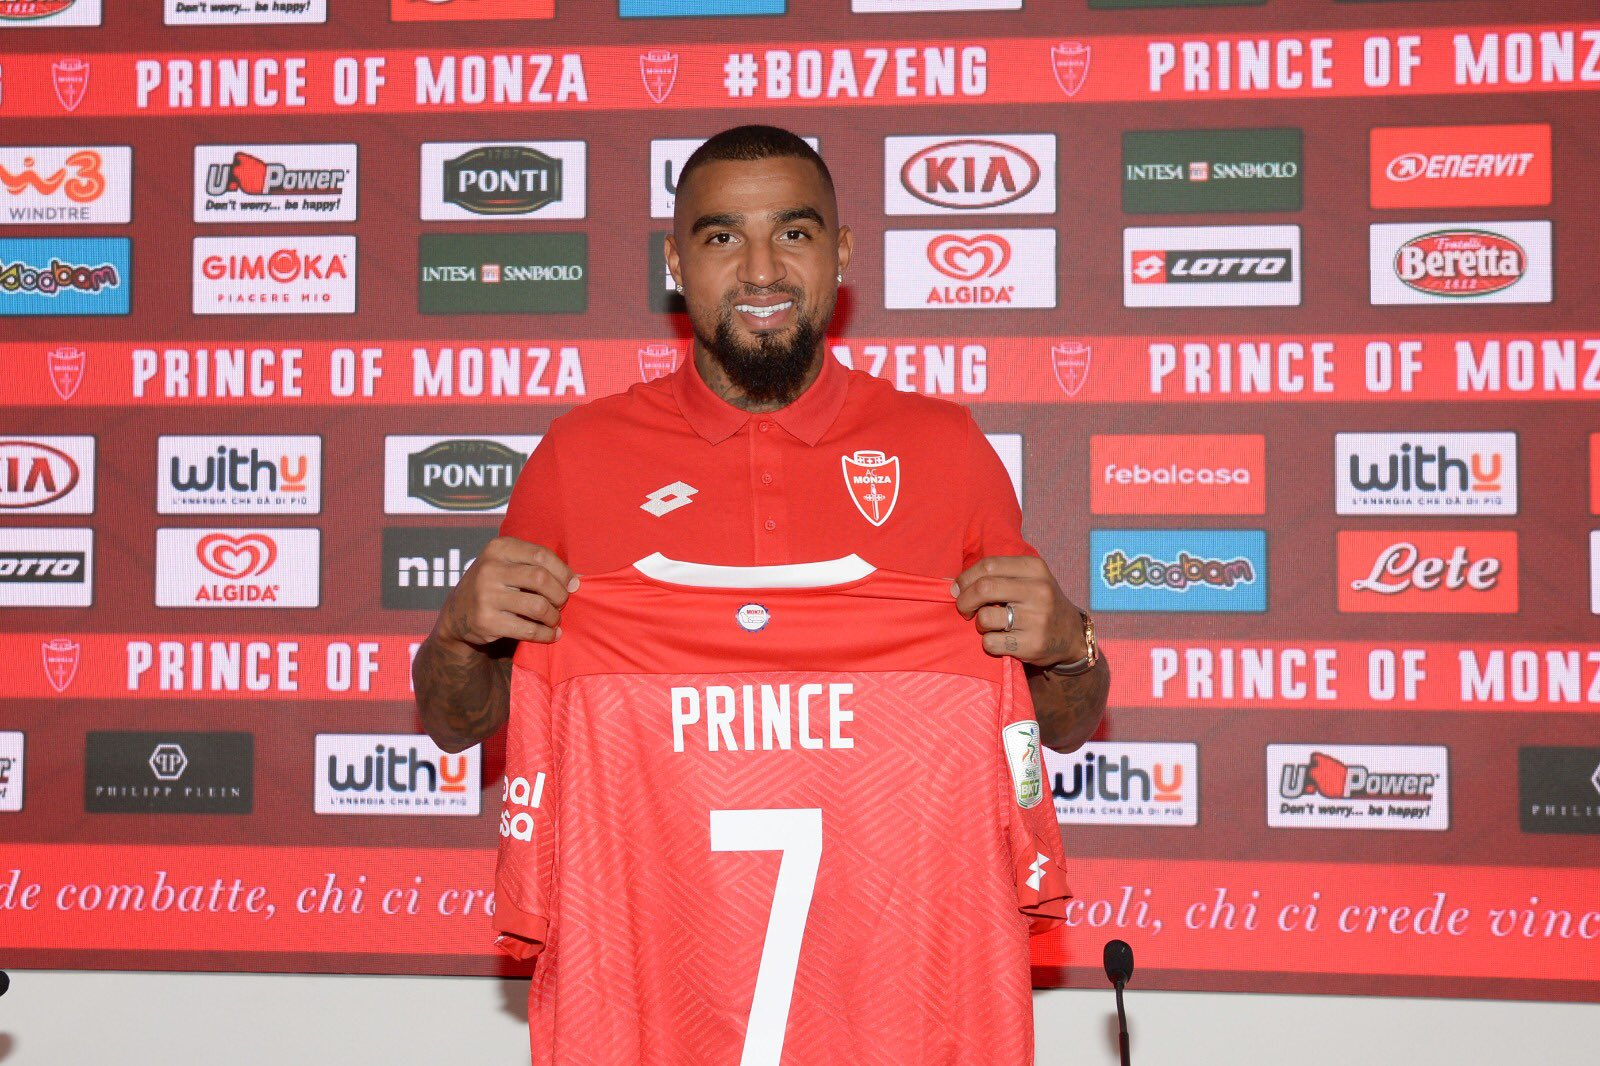 The Prince of Monza'- KP Boateng unveiled by Serie B outfit AC Monza - Football Made In Ghana